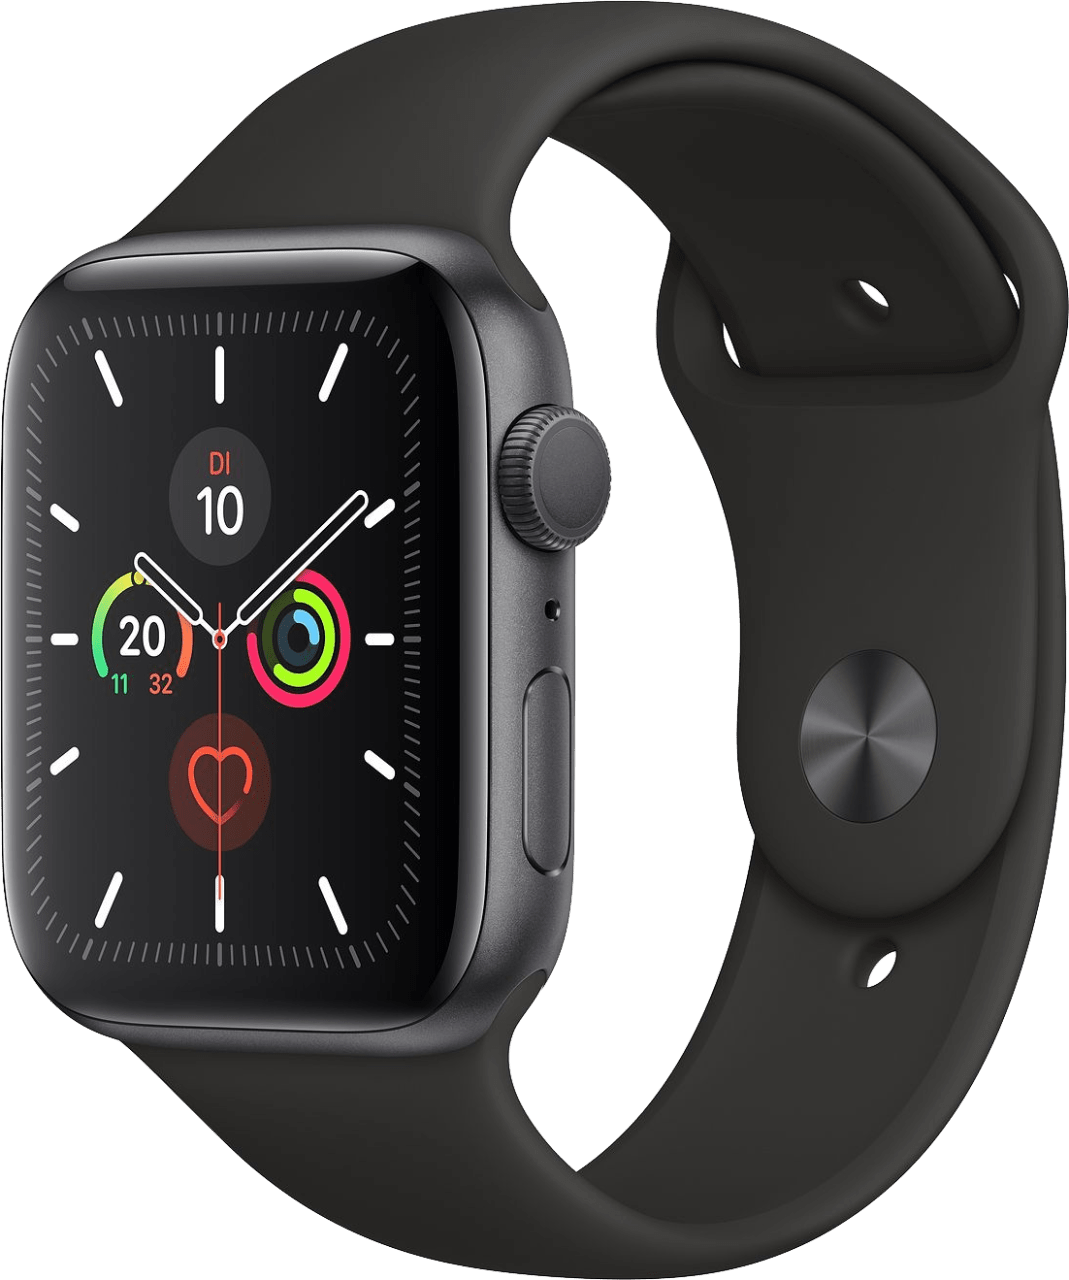 Schwarz Apple Watch Series 5 GPS, 40mm.2